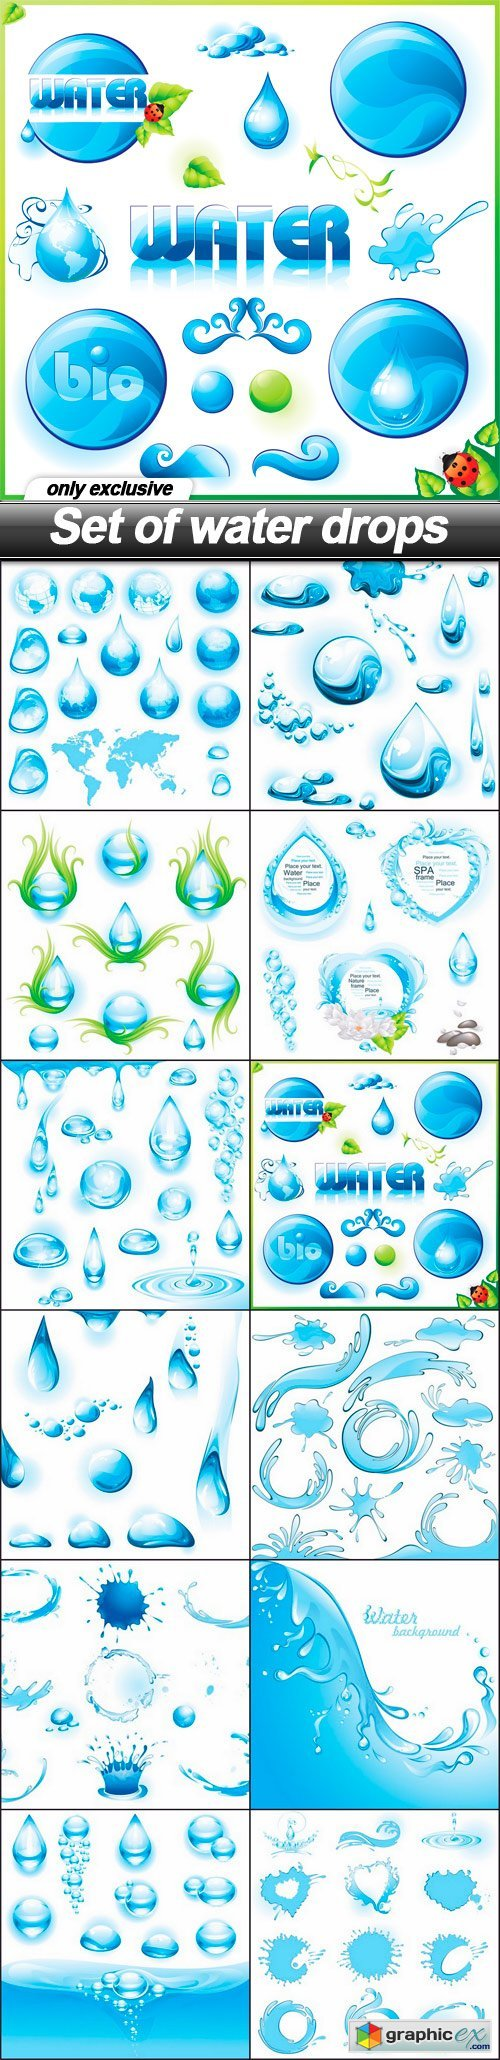 Set of water drops - 12 EPS